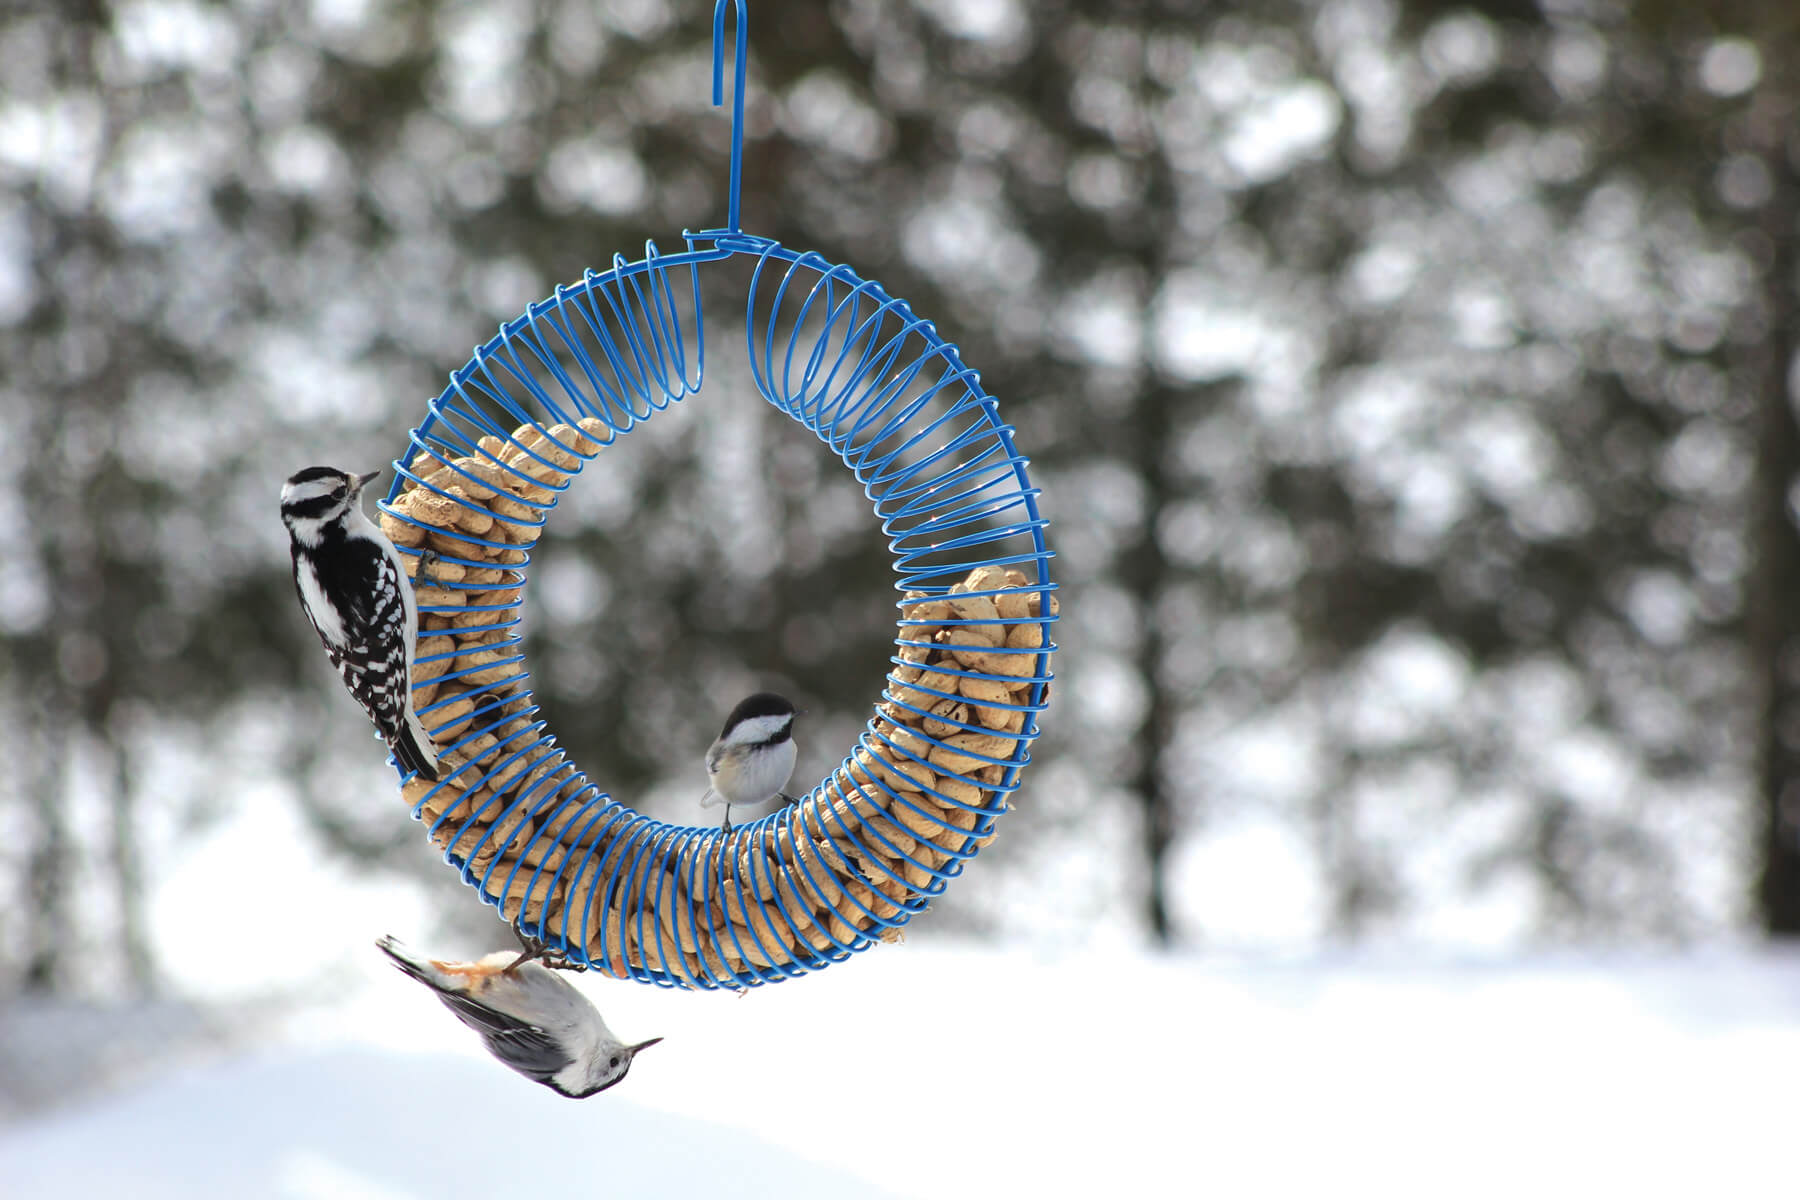 10765 Pinebush Blue Wreath Peanut Feeder Woodpecker Chickadee Nuthatch